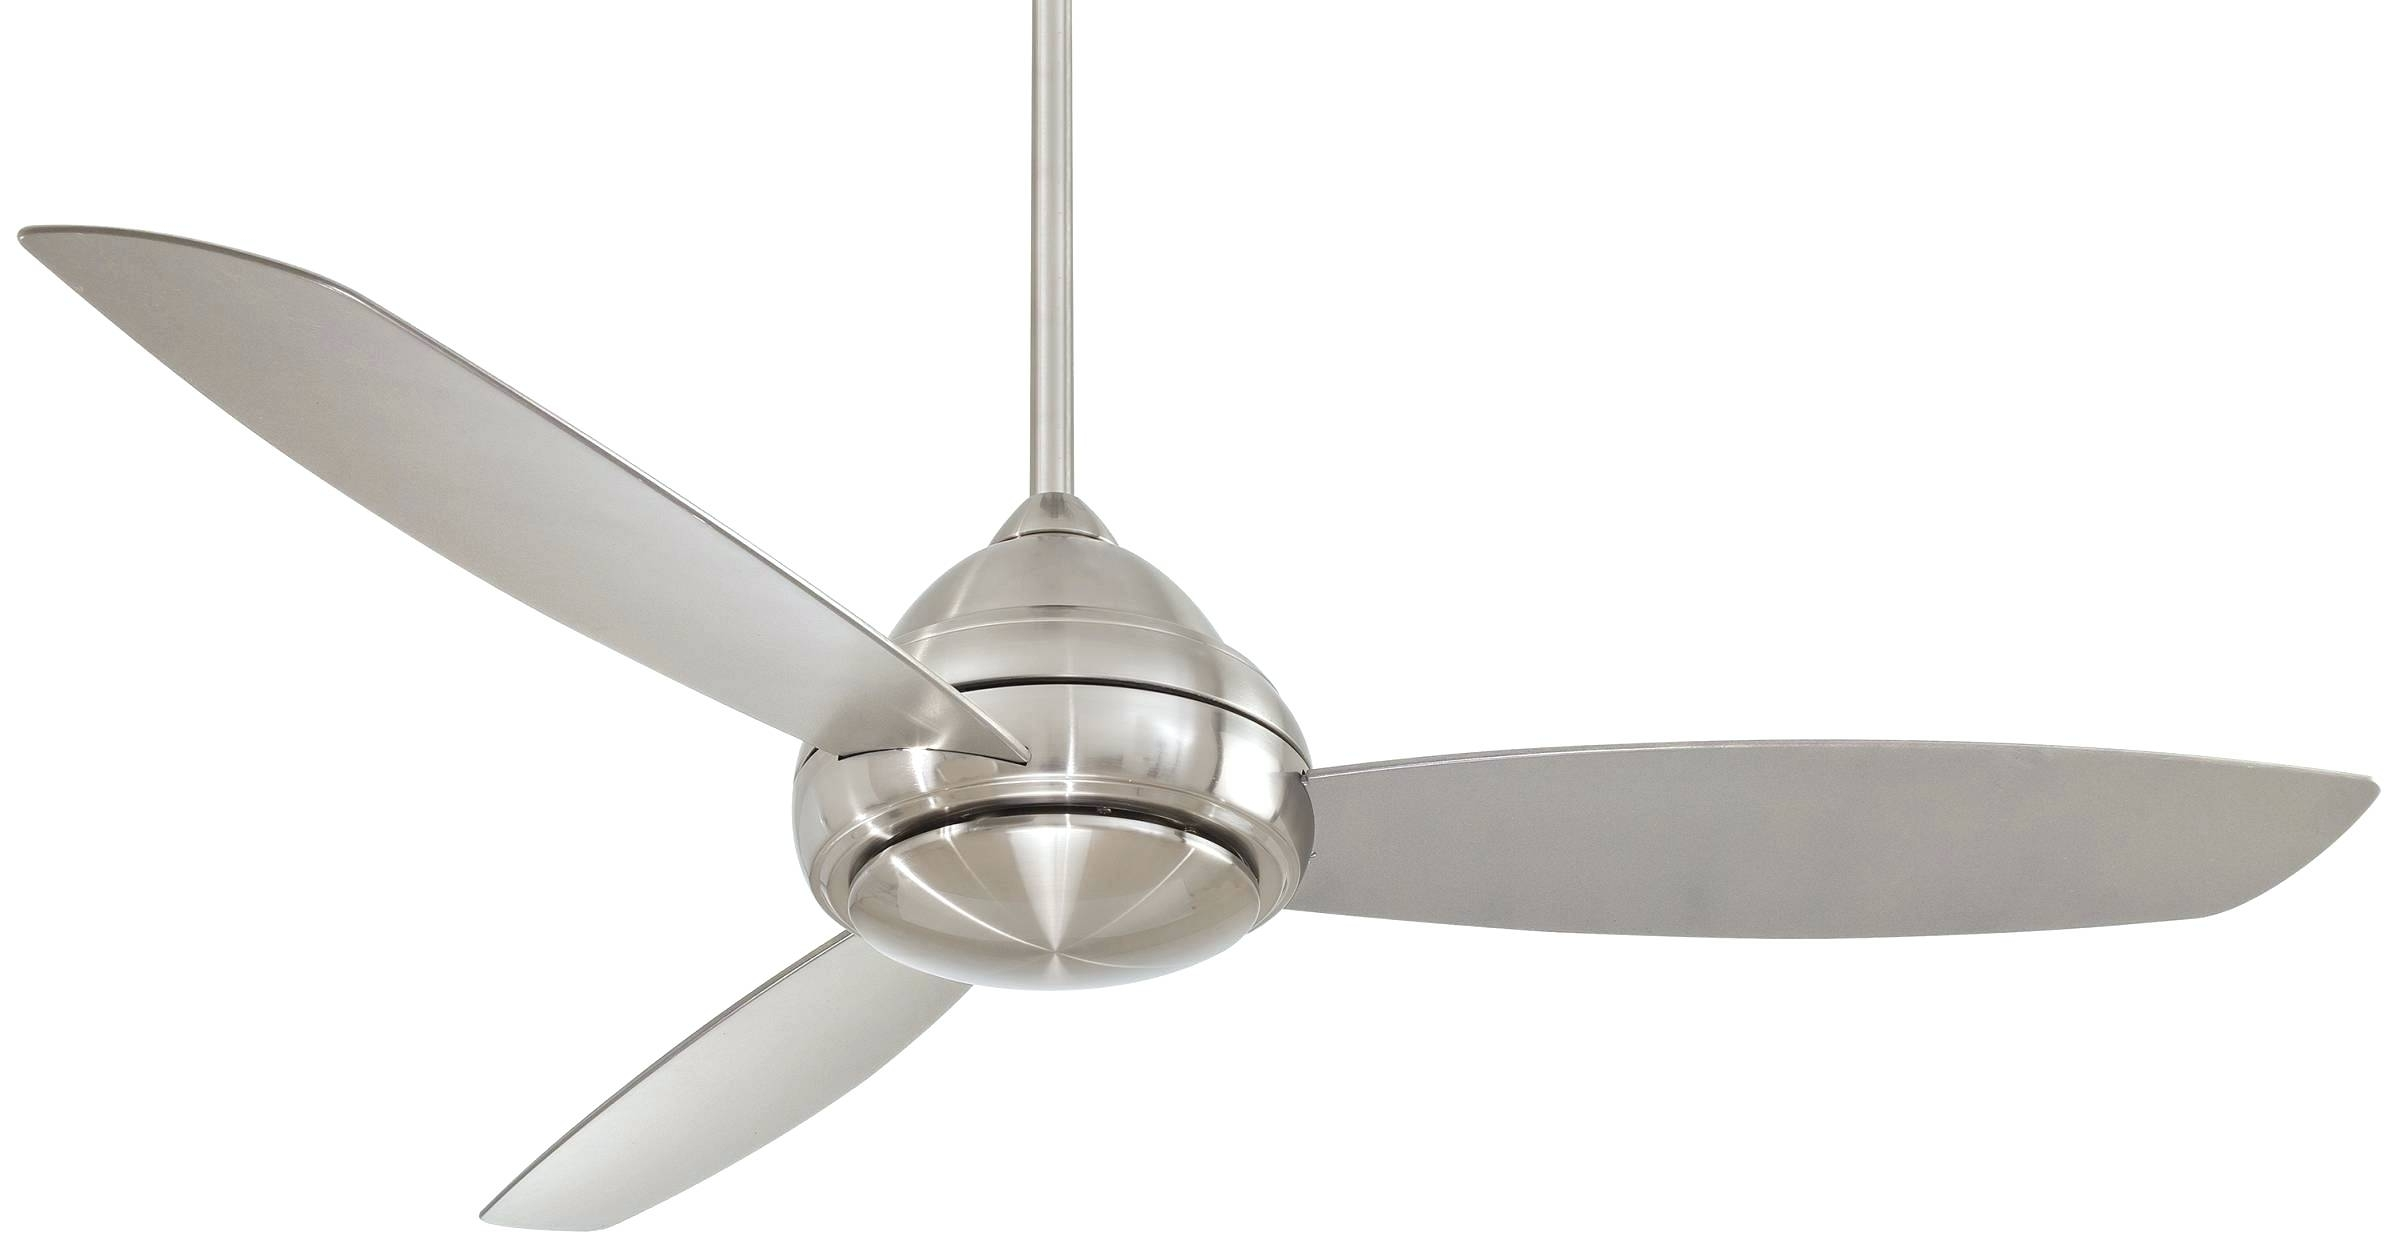 Damp Rated Ceiling Fans With Lights Outdoor Highest Fan Lig Light Regarding Outdoor Ceiling Fans With Damp Rated Lights (#4 of 15)